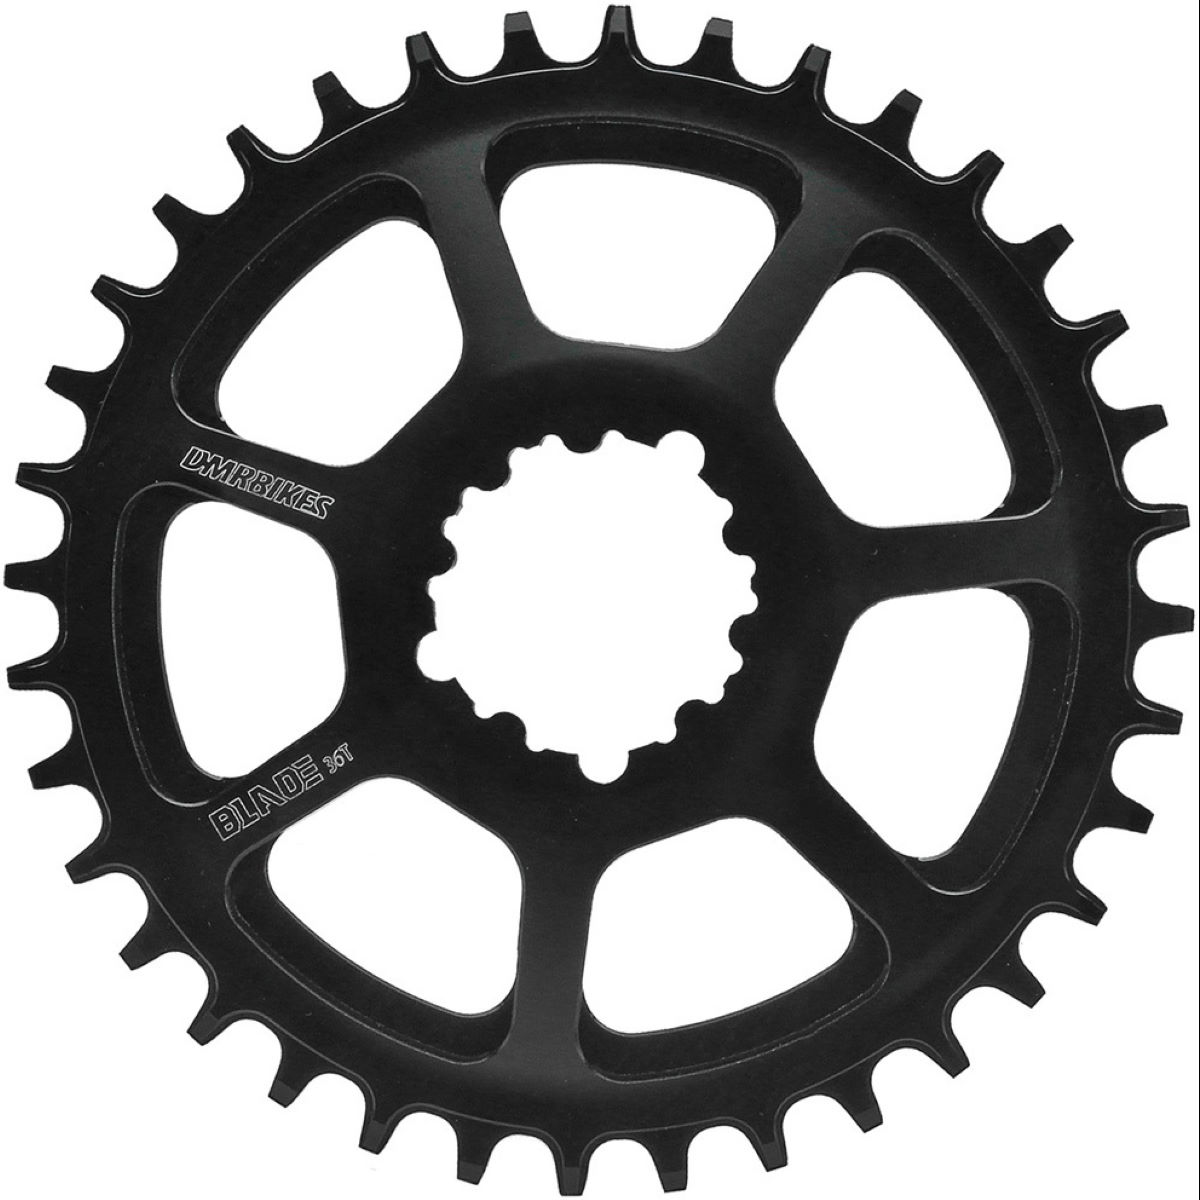 DMR DMR Blade Chainring   Chain Rings